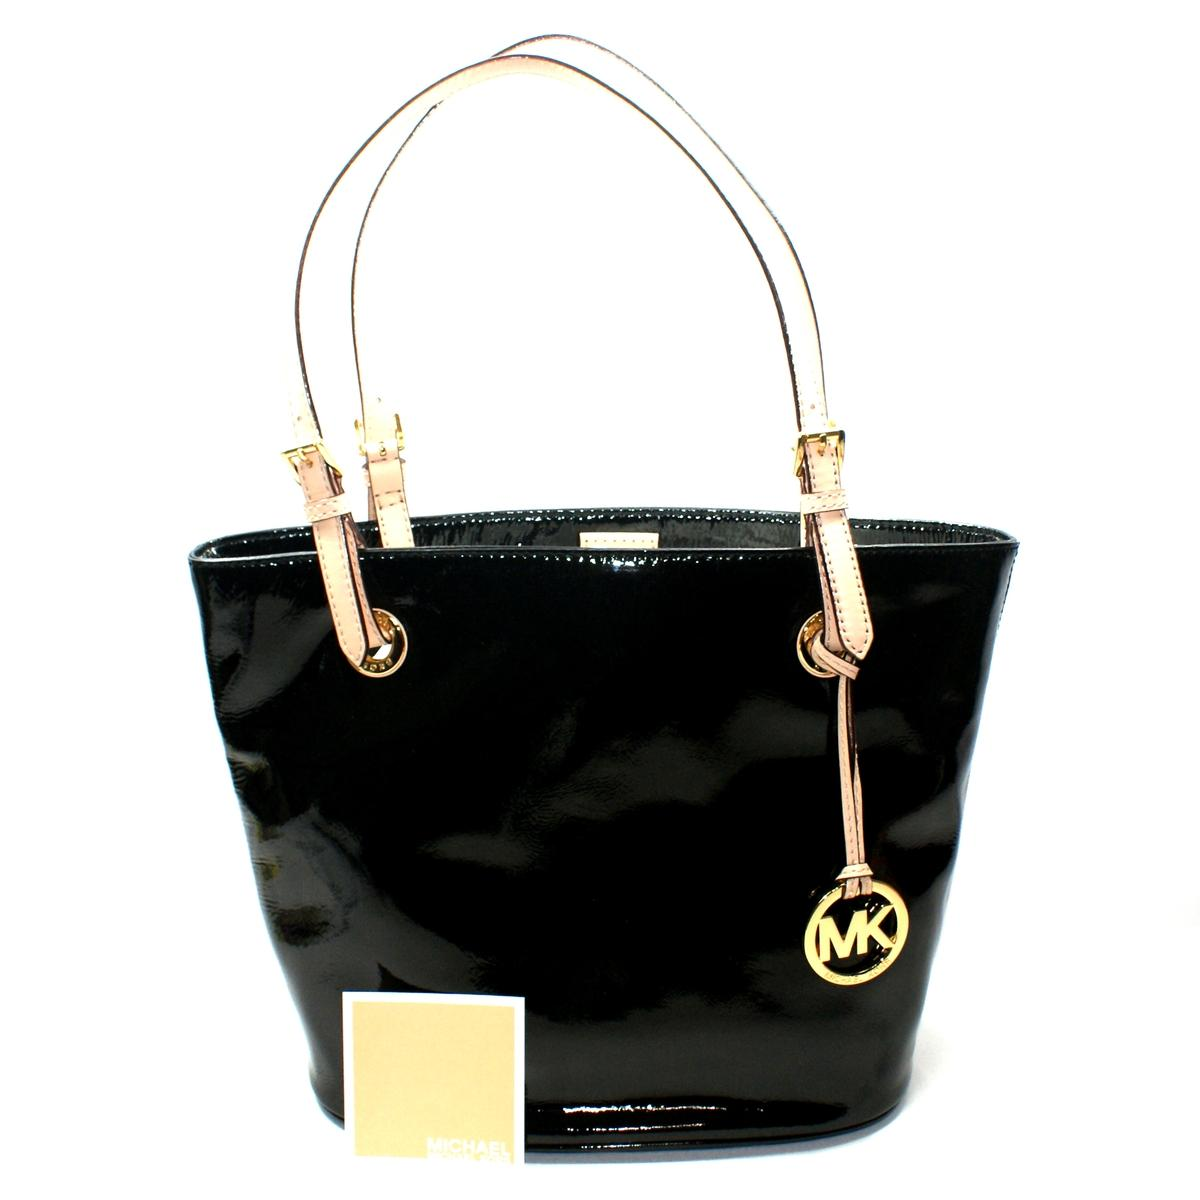 Michael Kors Jet Set Medium Genuine Patent Leather Tote